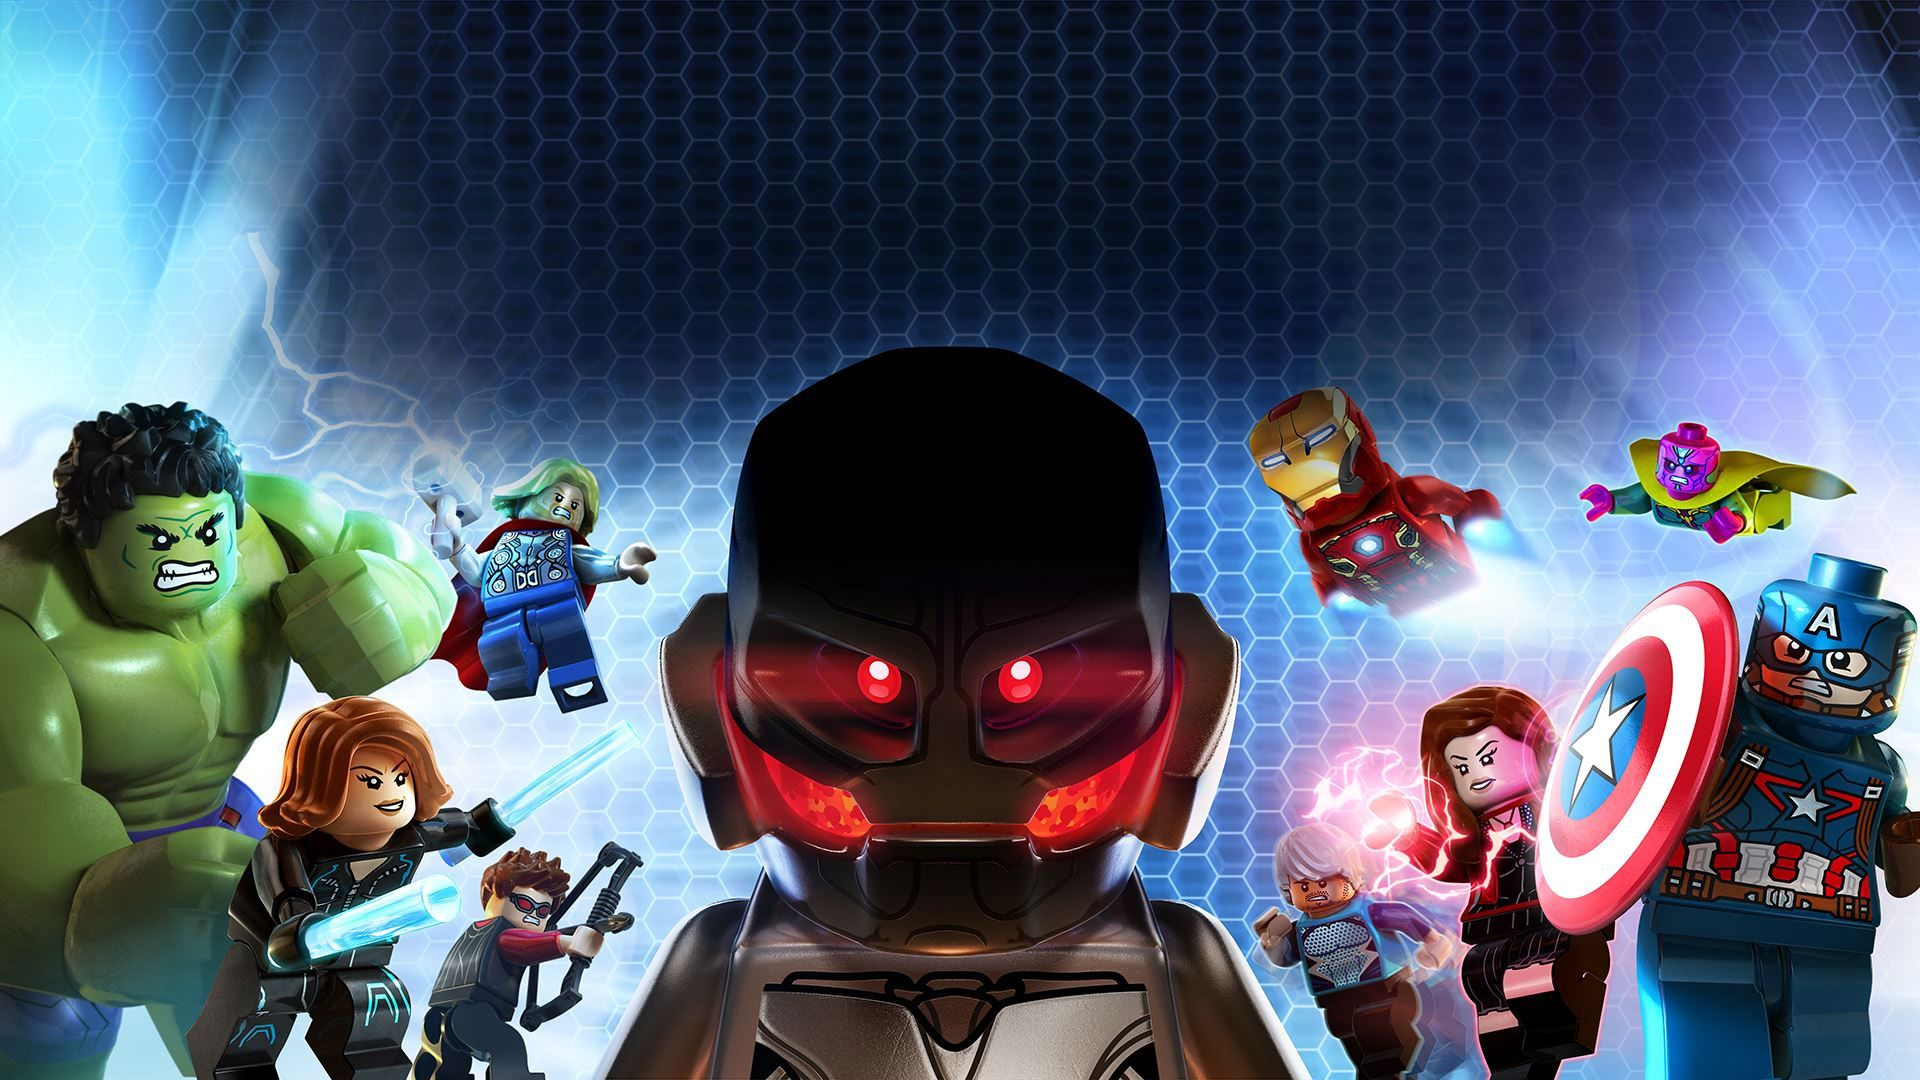 Lego Marvel S Avengers Wallpapers In Ultra Hd 4k Gameranx Avengers Lego Marvel 4k Wallpapers Ultra 1080p Ma In 2020 Lego Marvel S Avengers Lego Marvel Avengers